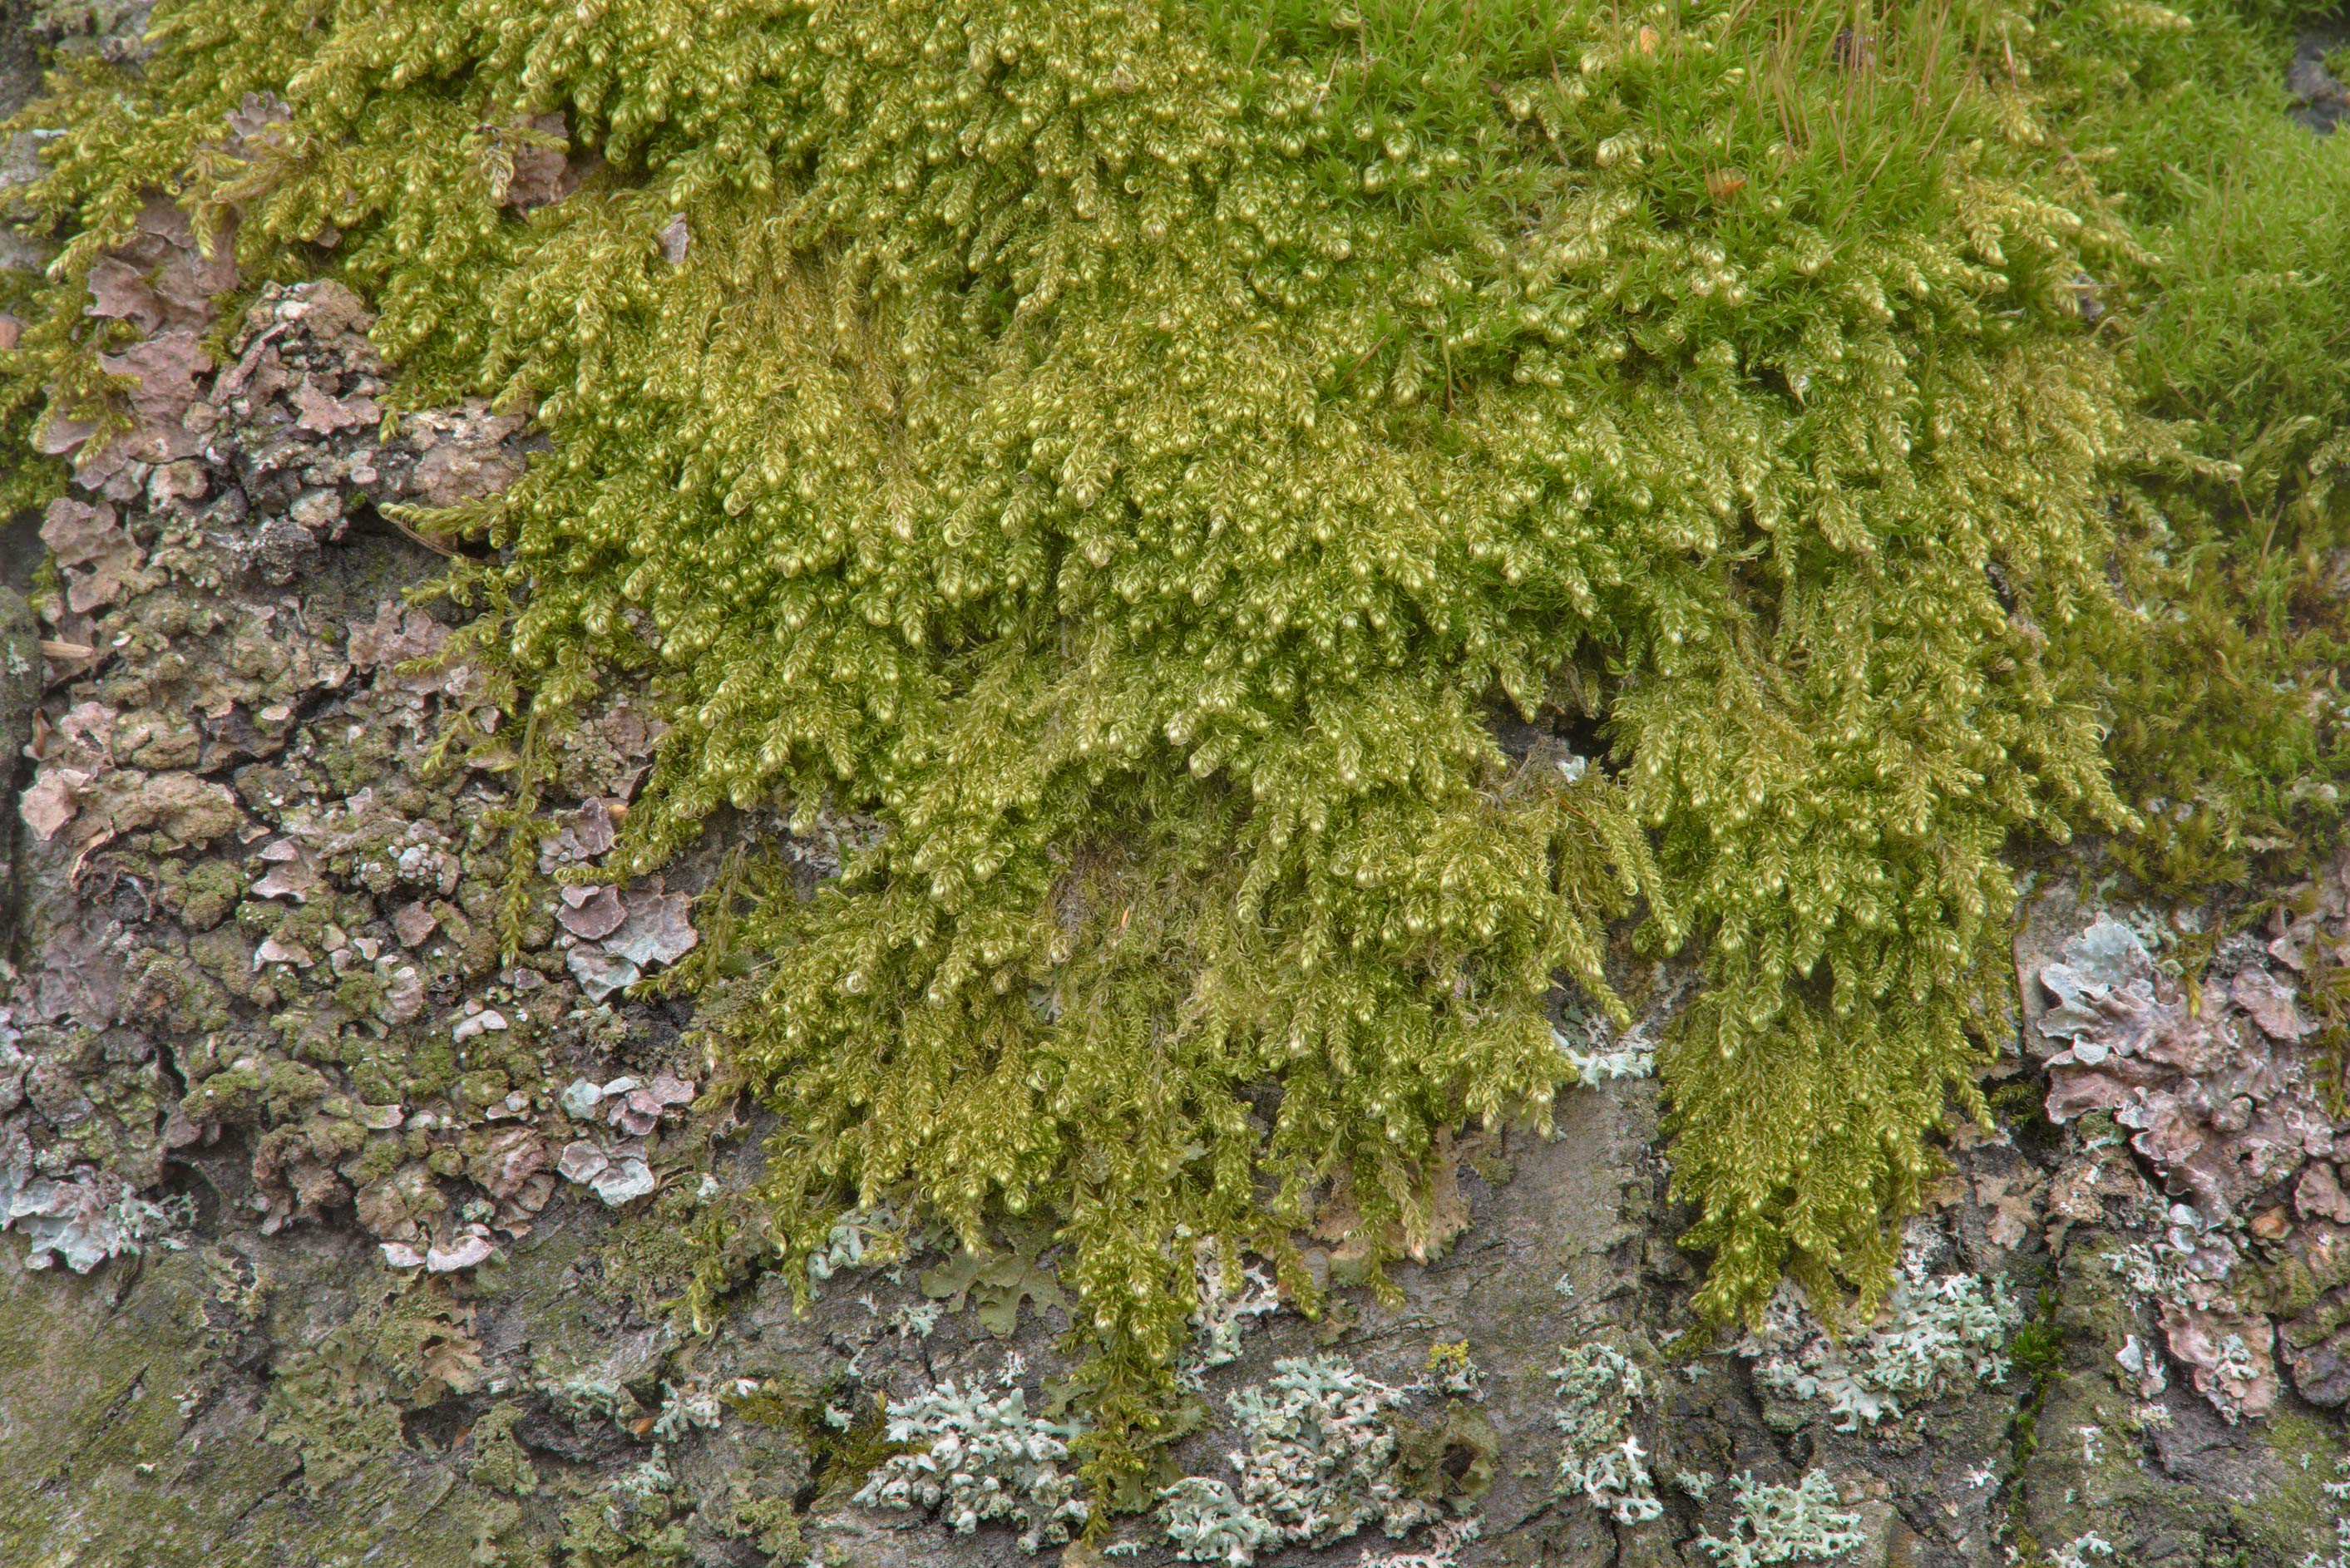 Moss on a birch tree in Botanic Gardens of...Institute. St.Petersburg, Russia